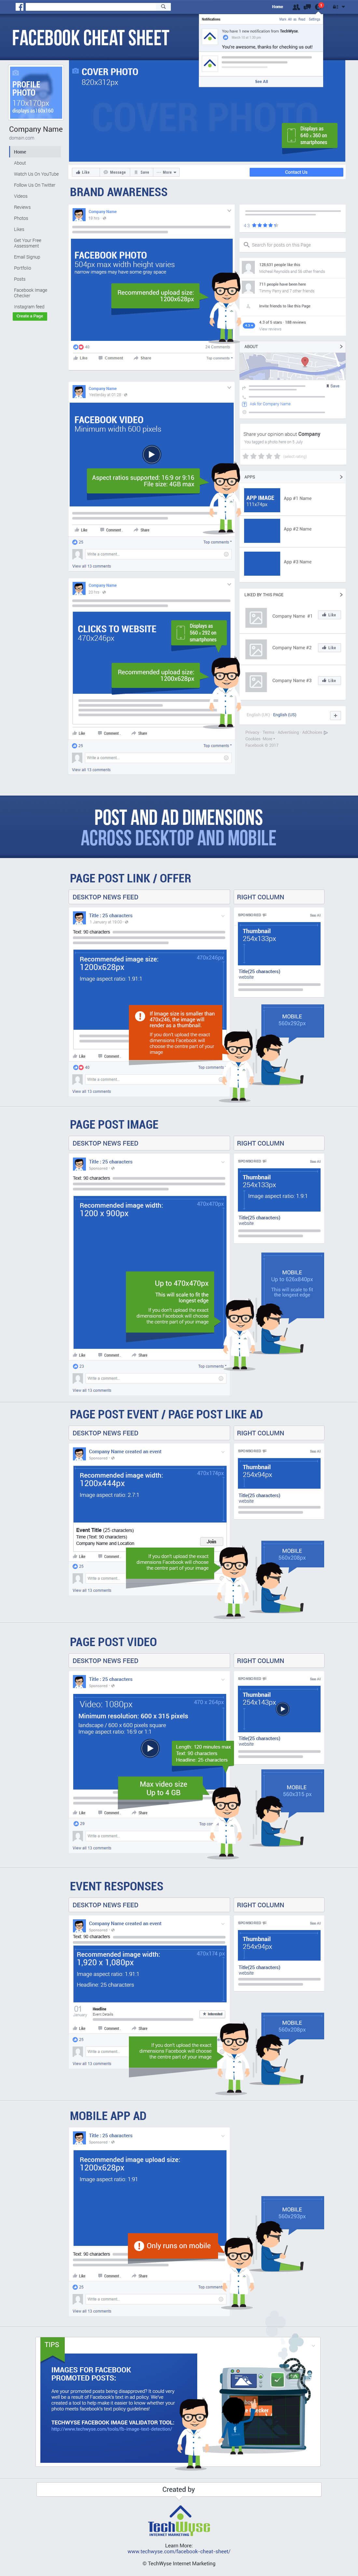 The Facebook Image Sizes Cheat Sheet